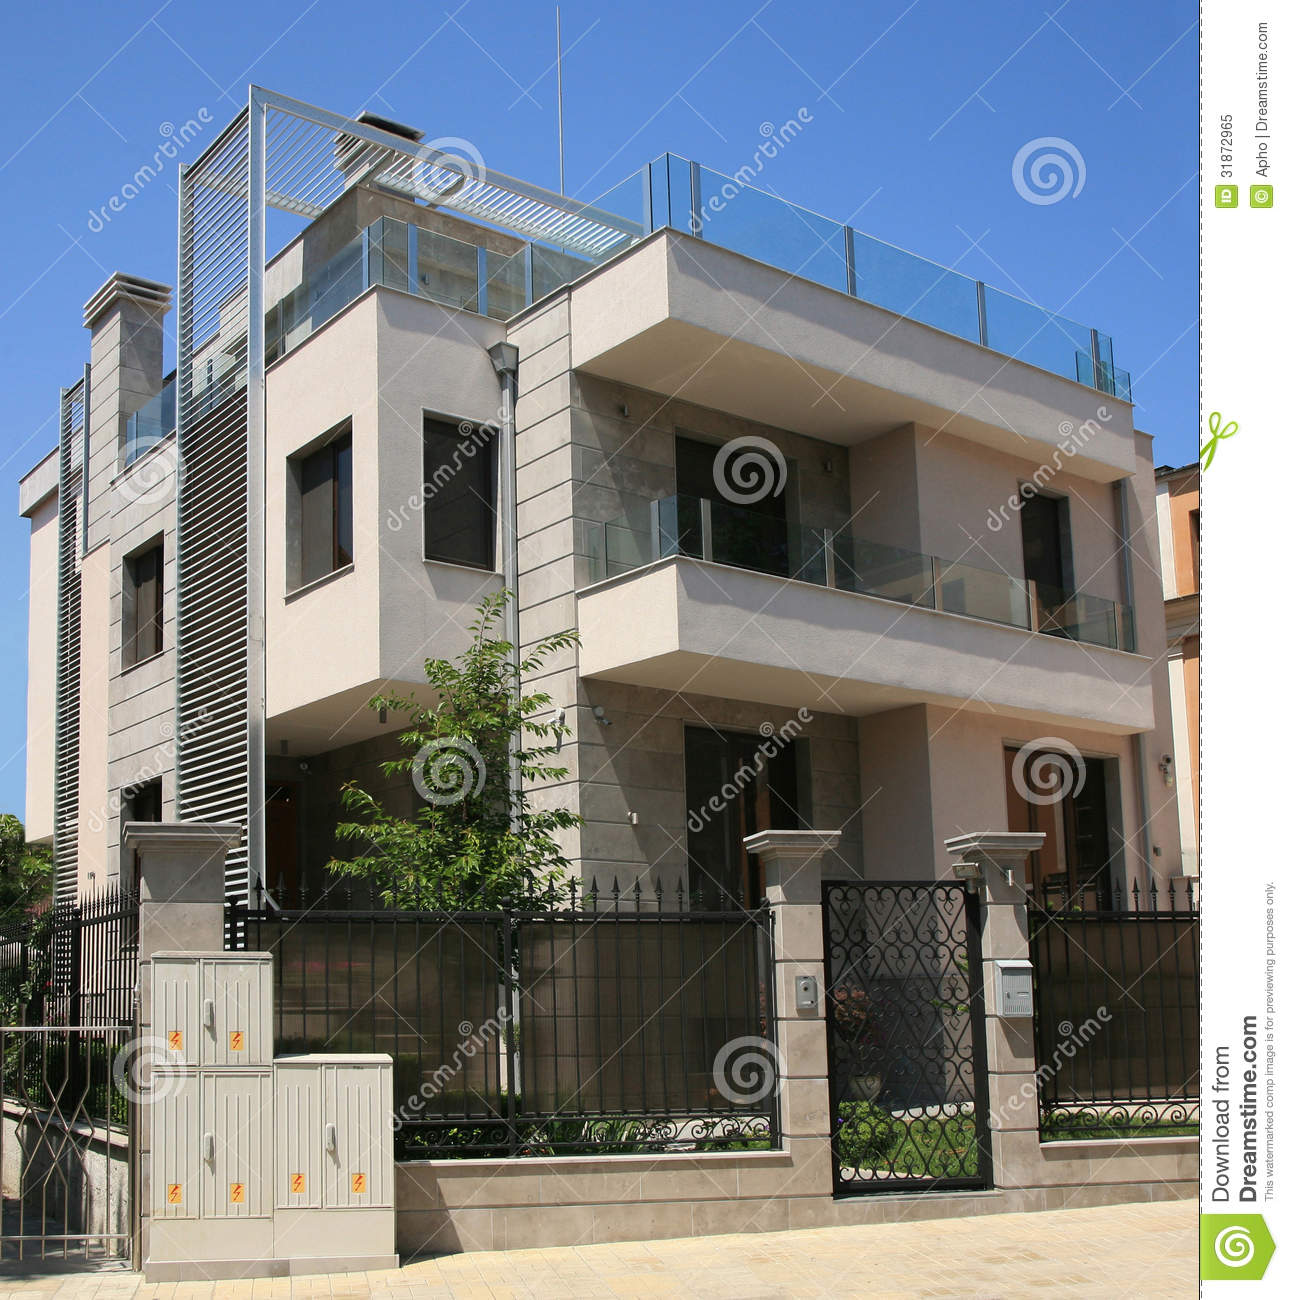 Modern house royalty free stock photo image 31872965 for Outer look of house design